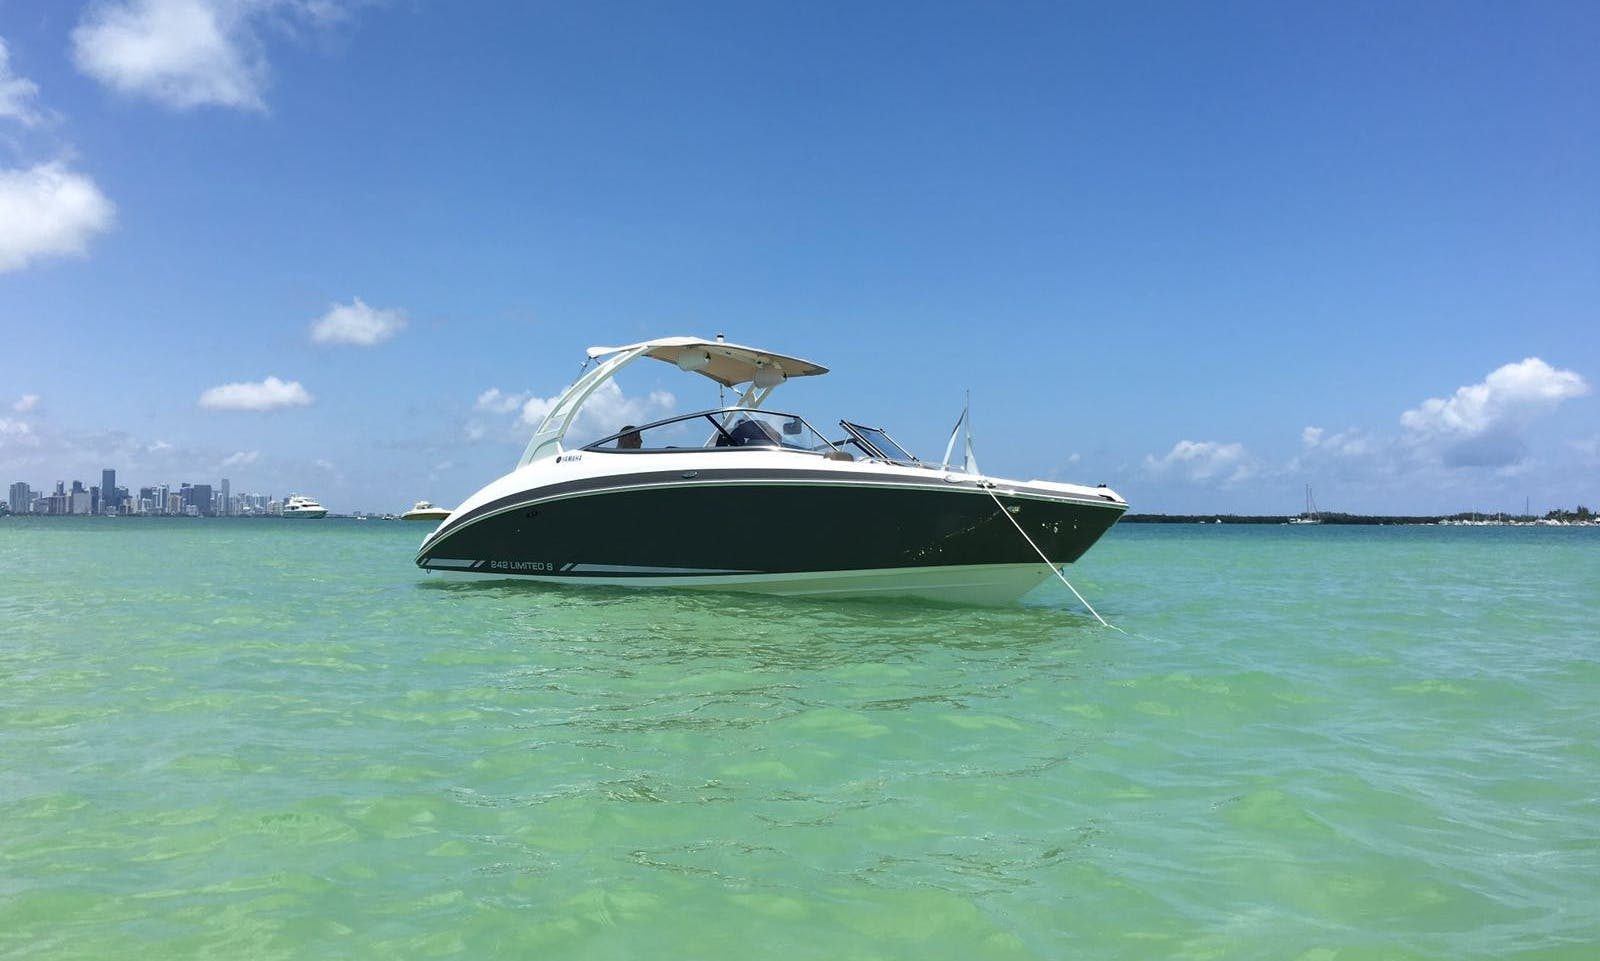 Amazing 24ft. Brandnew Jetboat with or without Captain just $120 per hour